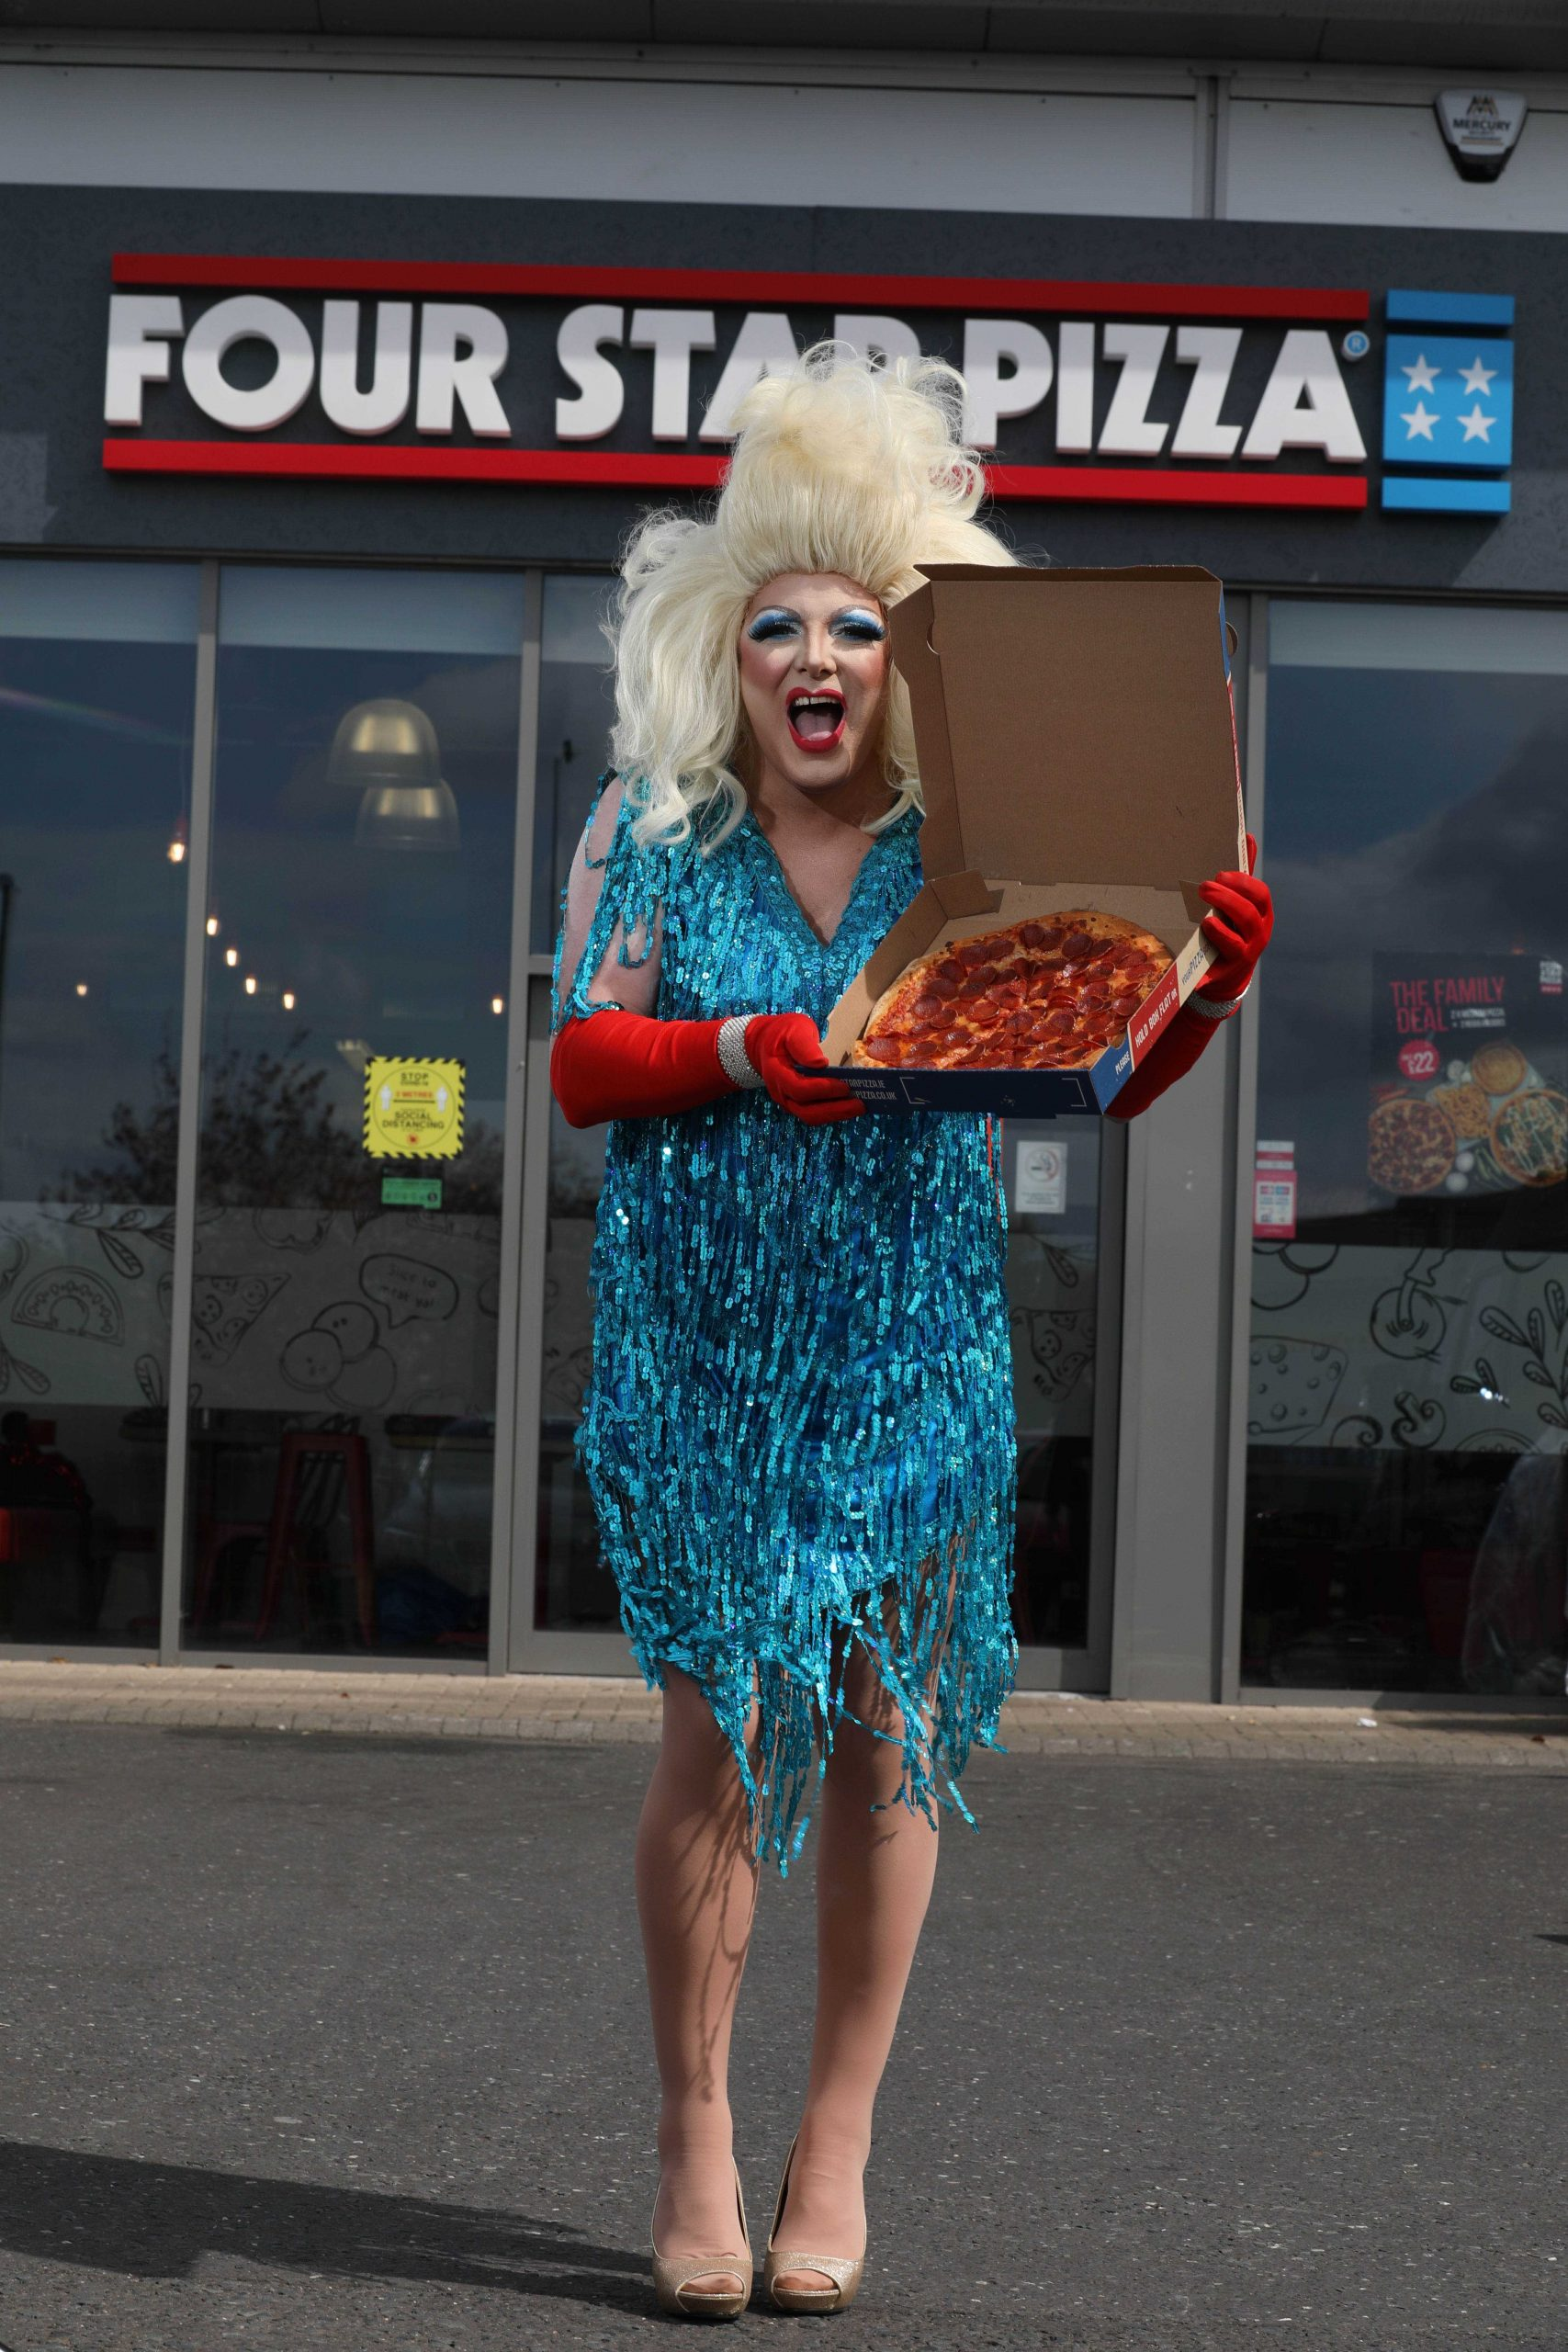 """Pizza fanatic, Alfie Parker (38), a mechanic from Belfast, had no idea when he responded to a message from his favourite pizza takeaway, that he would become Northern Ireland's latest Drag Queen, Anita Pizza, following a makeover by NI Drag Queen royalty, Trudy Scrumptious! Alfie, aka Anita Pizza, said: """"I didn't think my love of Four Star Pizza would lead me down this path, and in heels, but my outlook on life is that you only live once, so after discussing it with my wife, Isobel, and daughter Brianna, I decided to give it a go."""" Brian Clarke, Director at Four Star Pizza, explained: """"We wanted to do something a bit different for the launch of our new pizzas; everyone knows how amazing our pizzas are, it wasn't about that, we just wanted to stop our customers in their tracks with something surprising that would put a smile on their faces."""" Visit www.fourstarpizza.co.uk for more information and details of their new menu."""